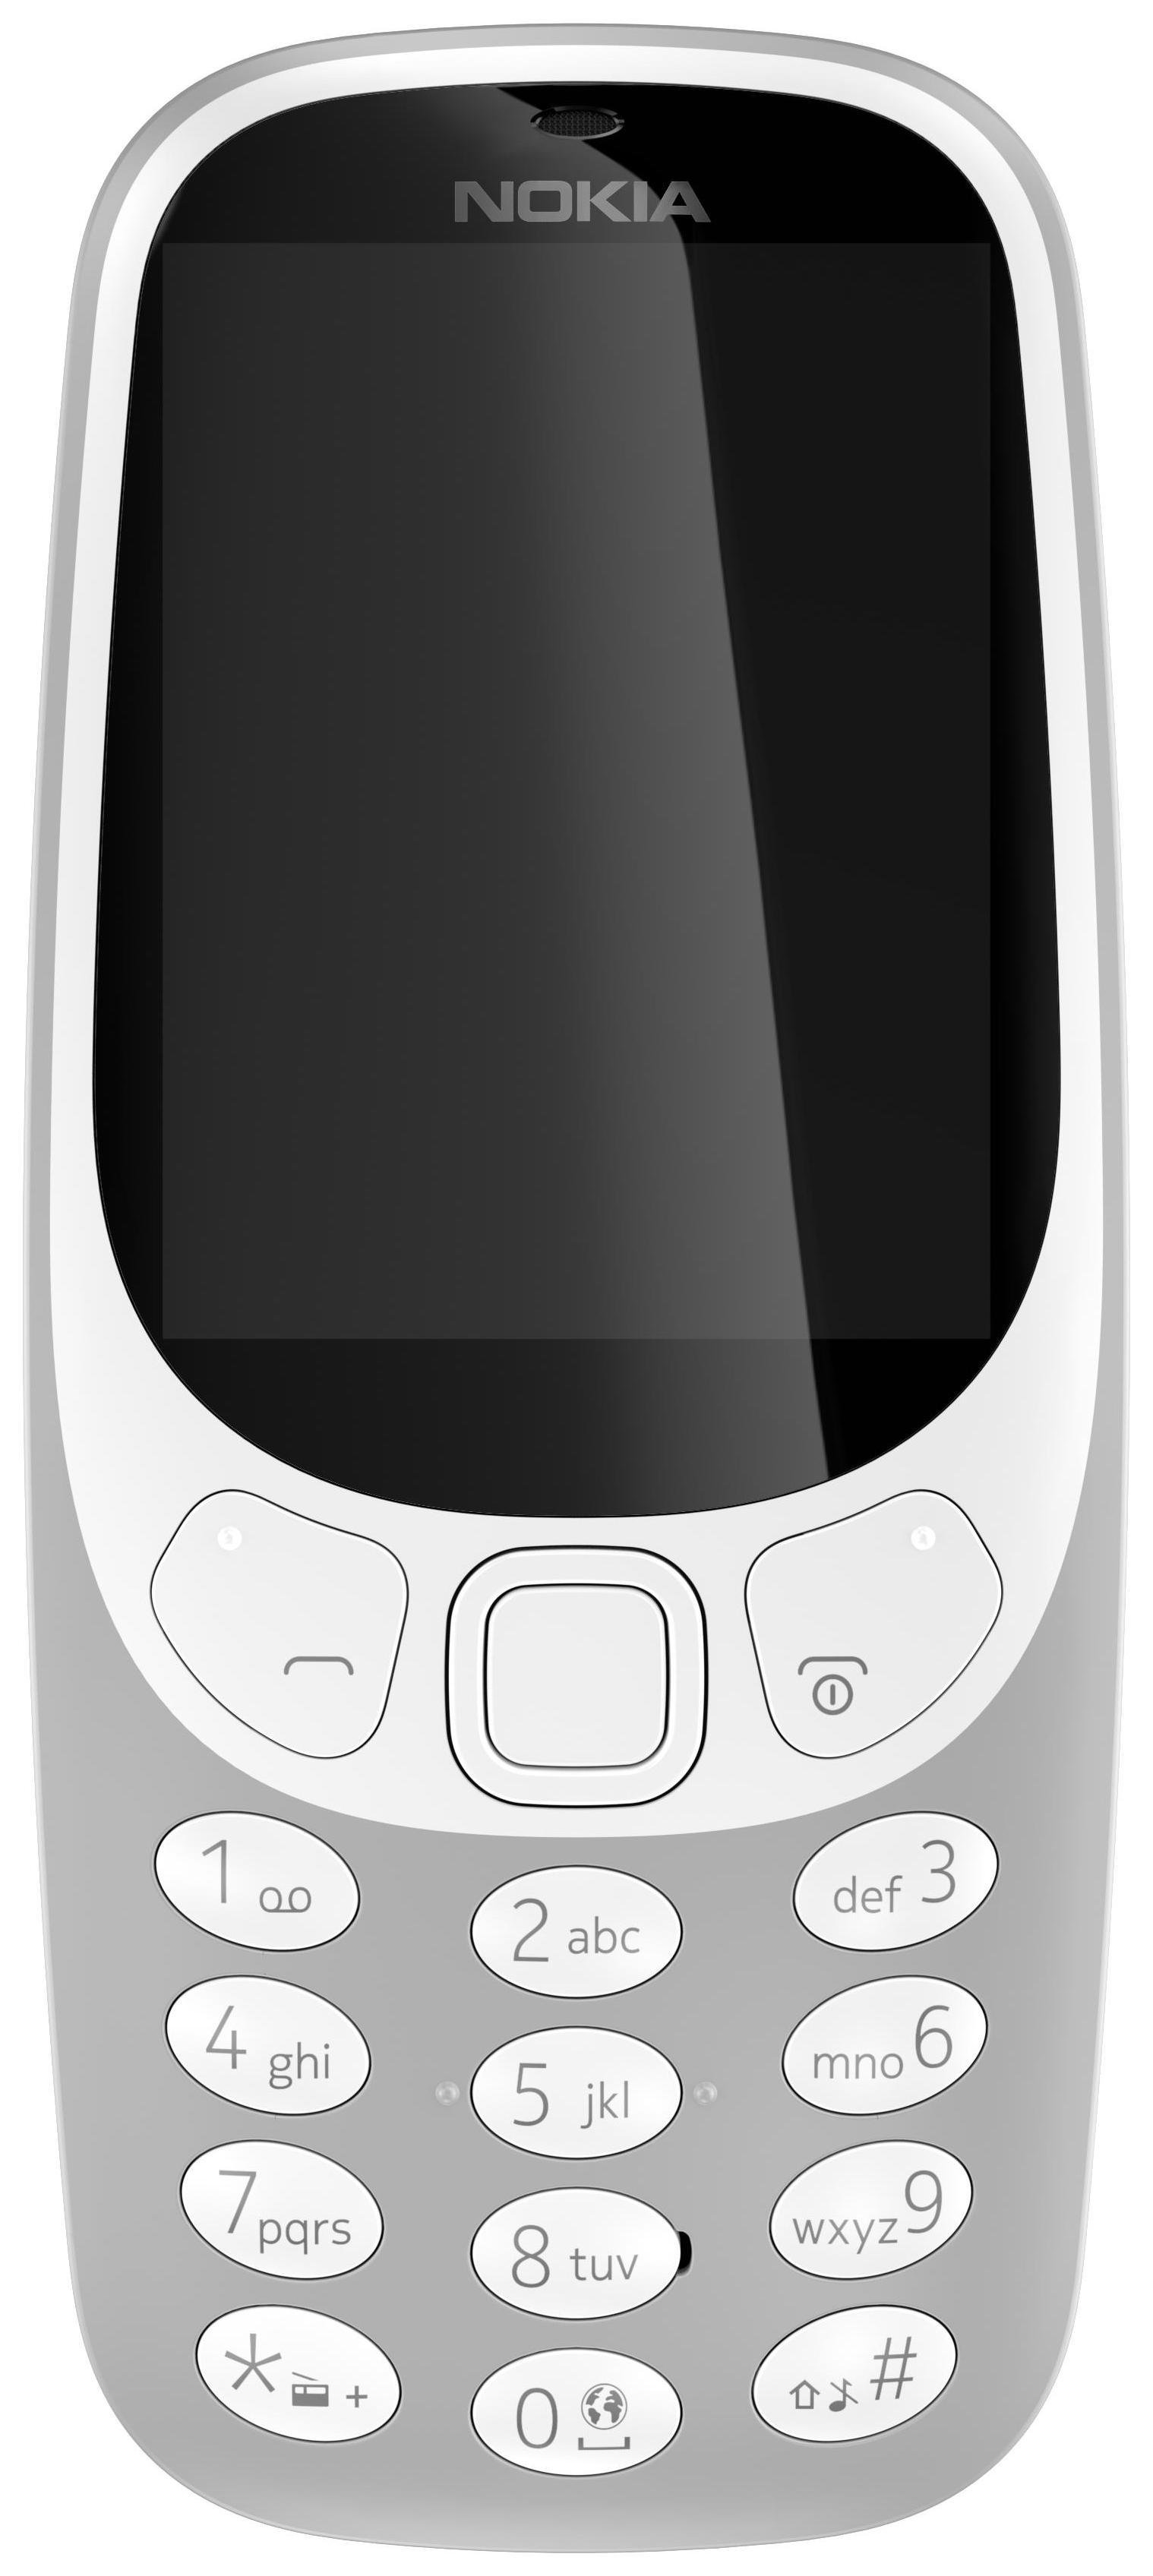 EE Nokia 3310 Mobile Phone - Grey